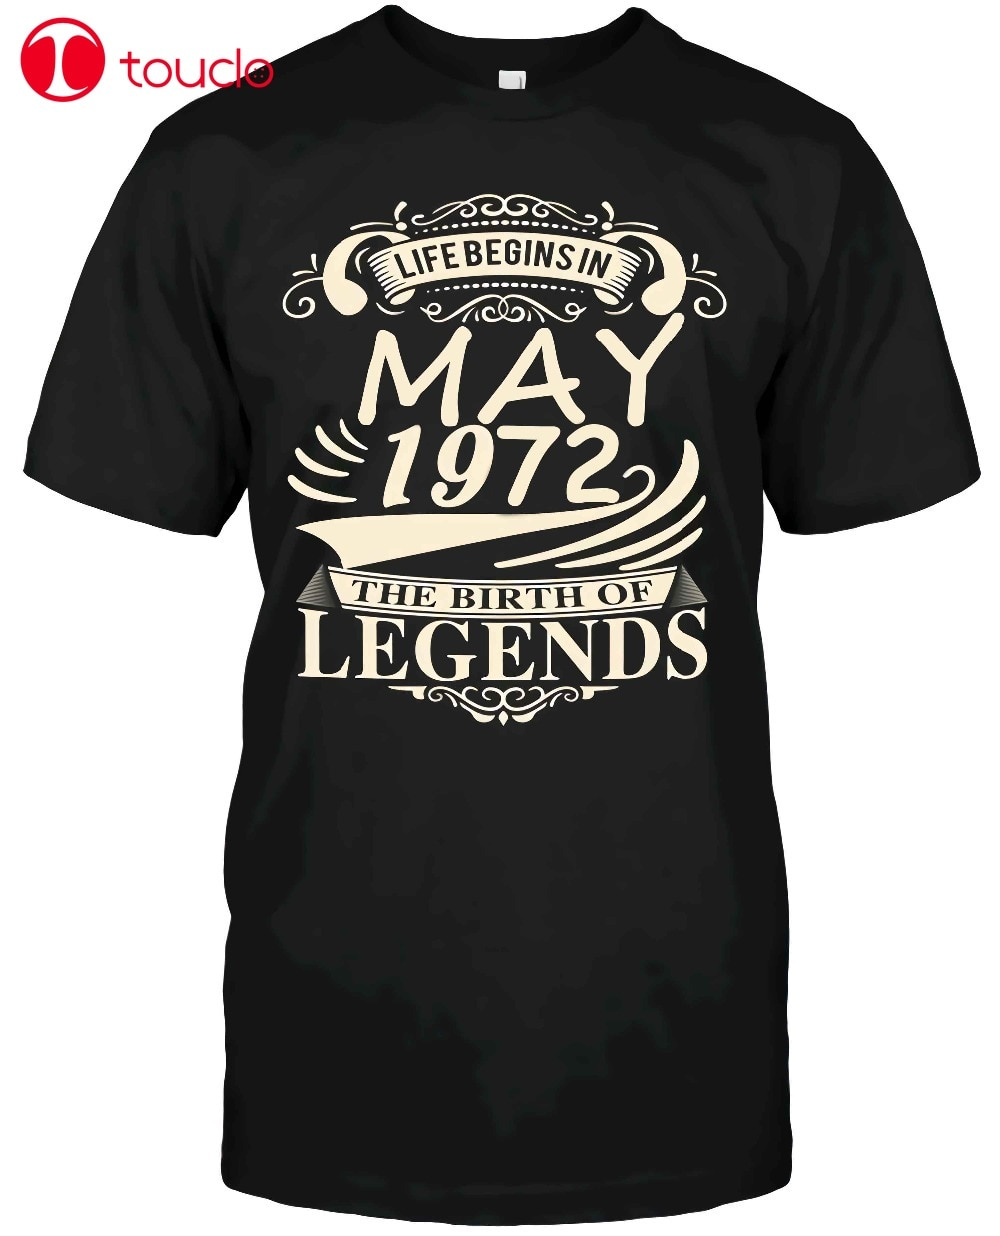 Life Begins In May 1972 The Birth Of Legends Custom Made Sweater